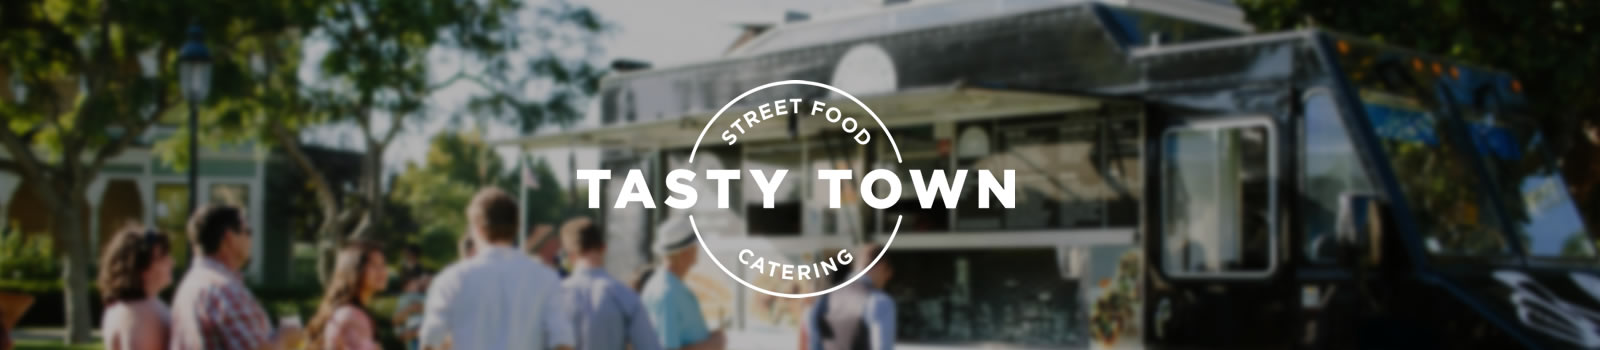 Book tastytown til events og fest